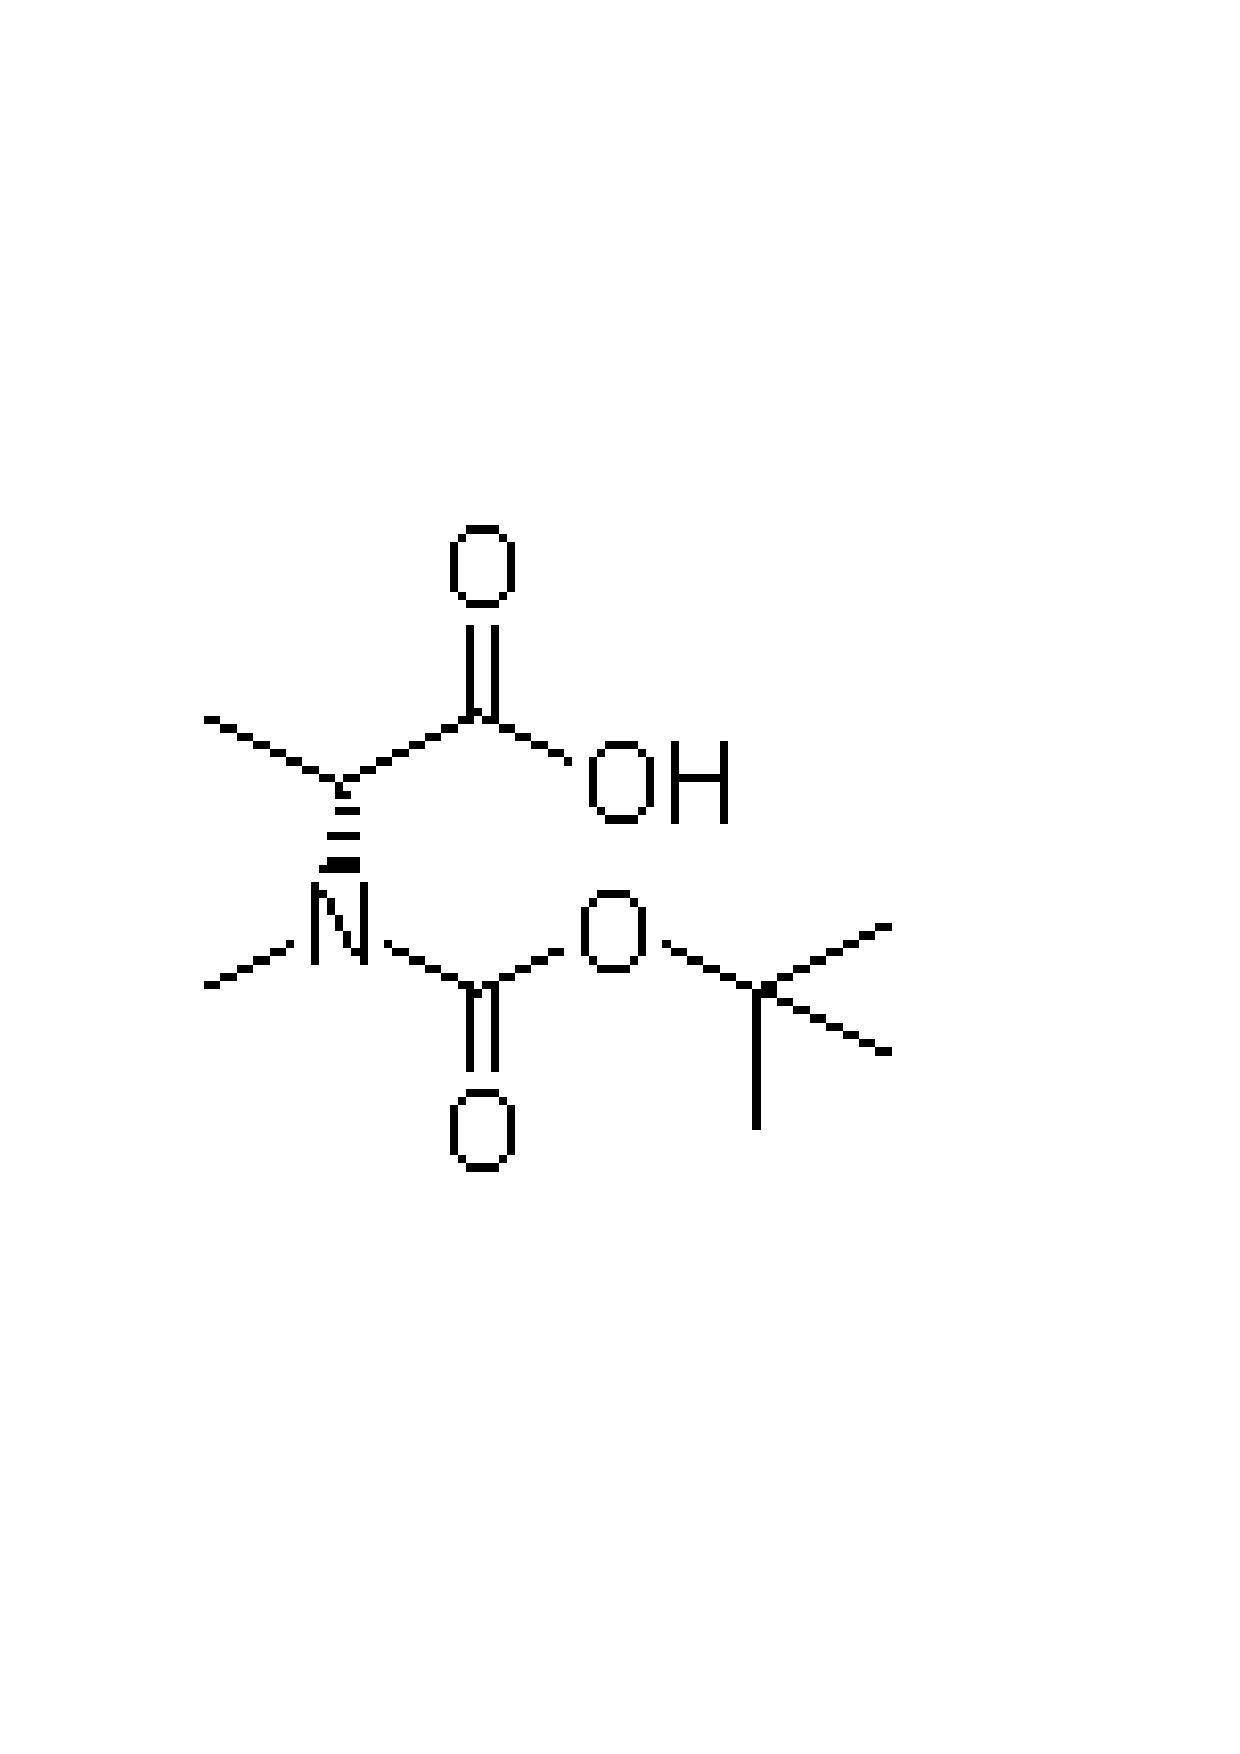 Boc-N-methyl-D-alanine, cas no: 19914-38-6